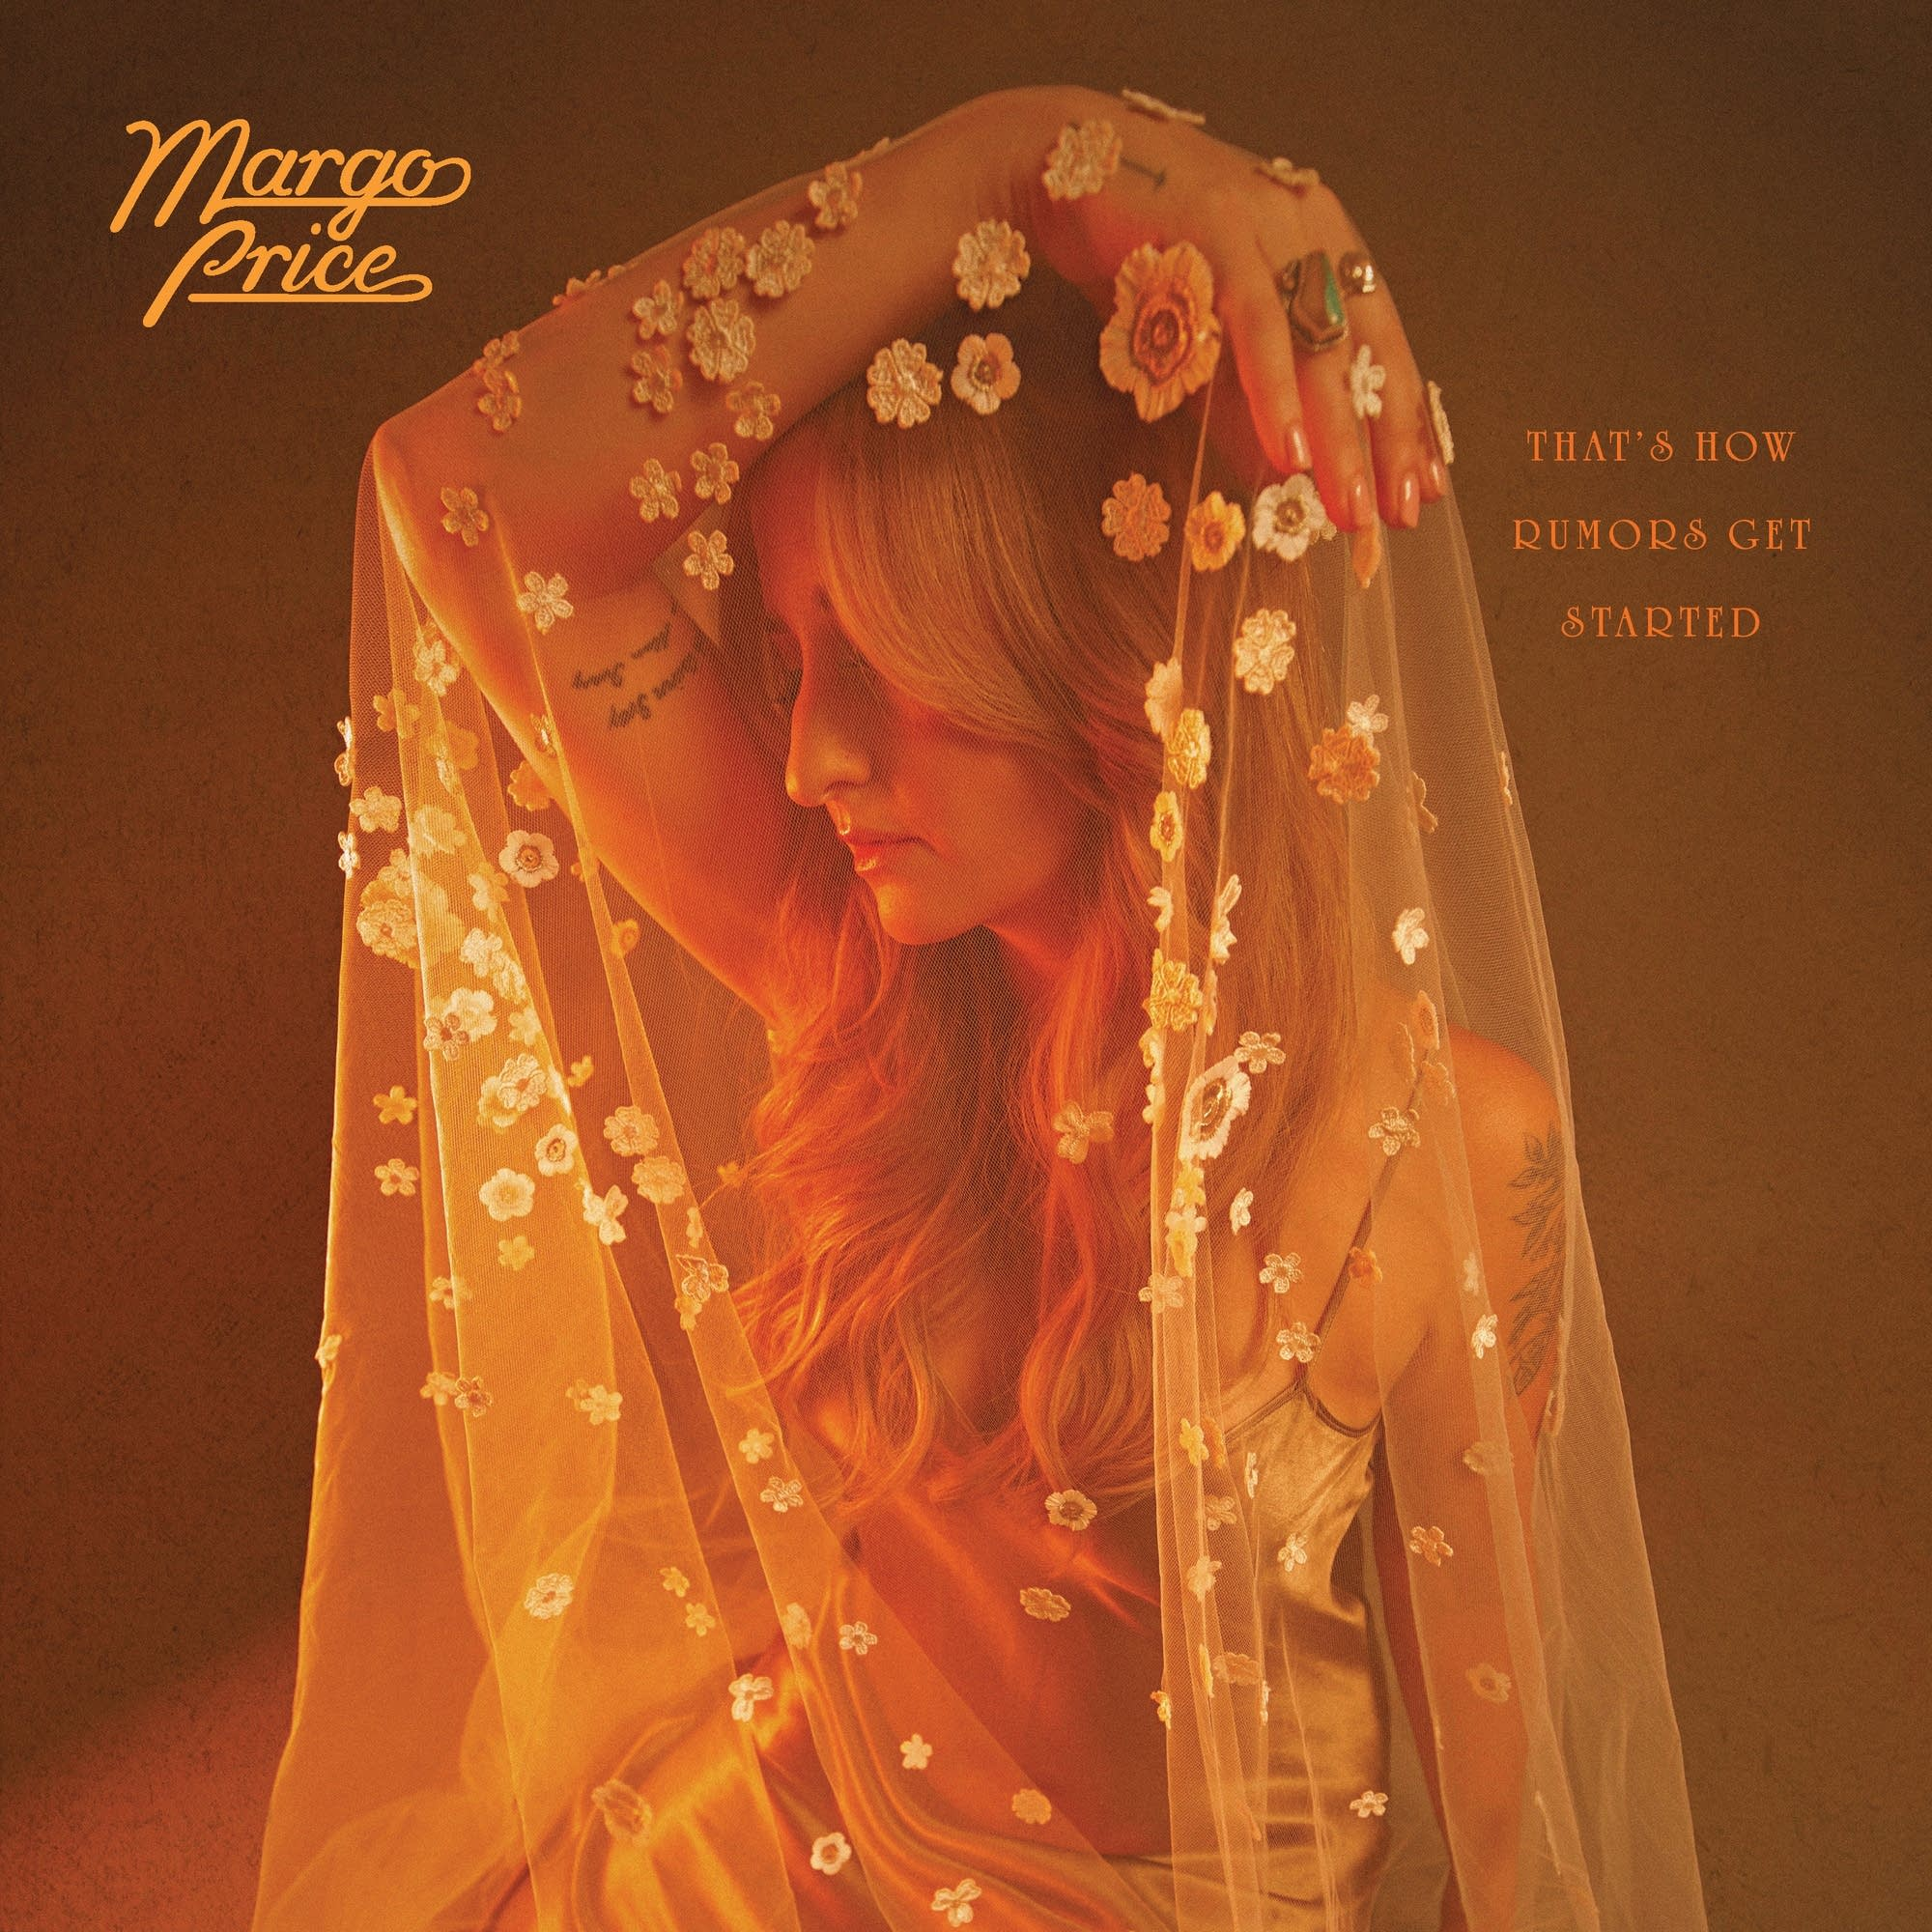 Margo Price, 'That's How Rumors Get Started'